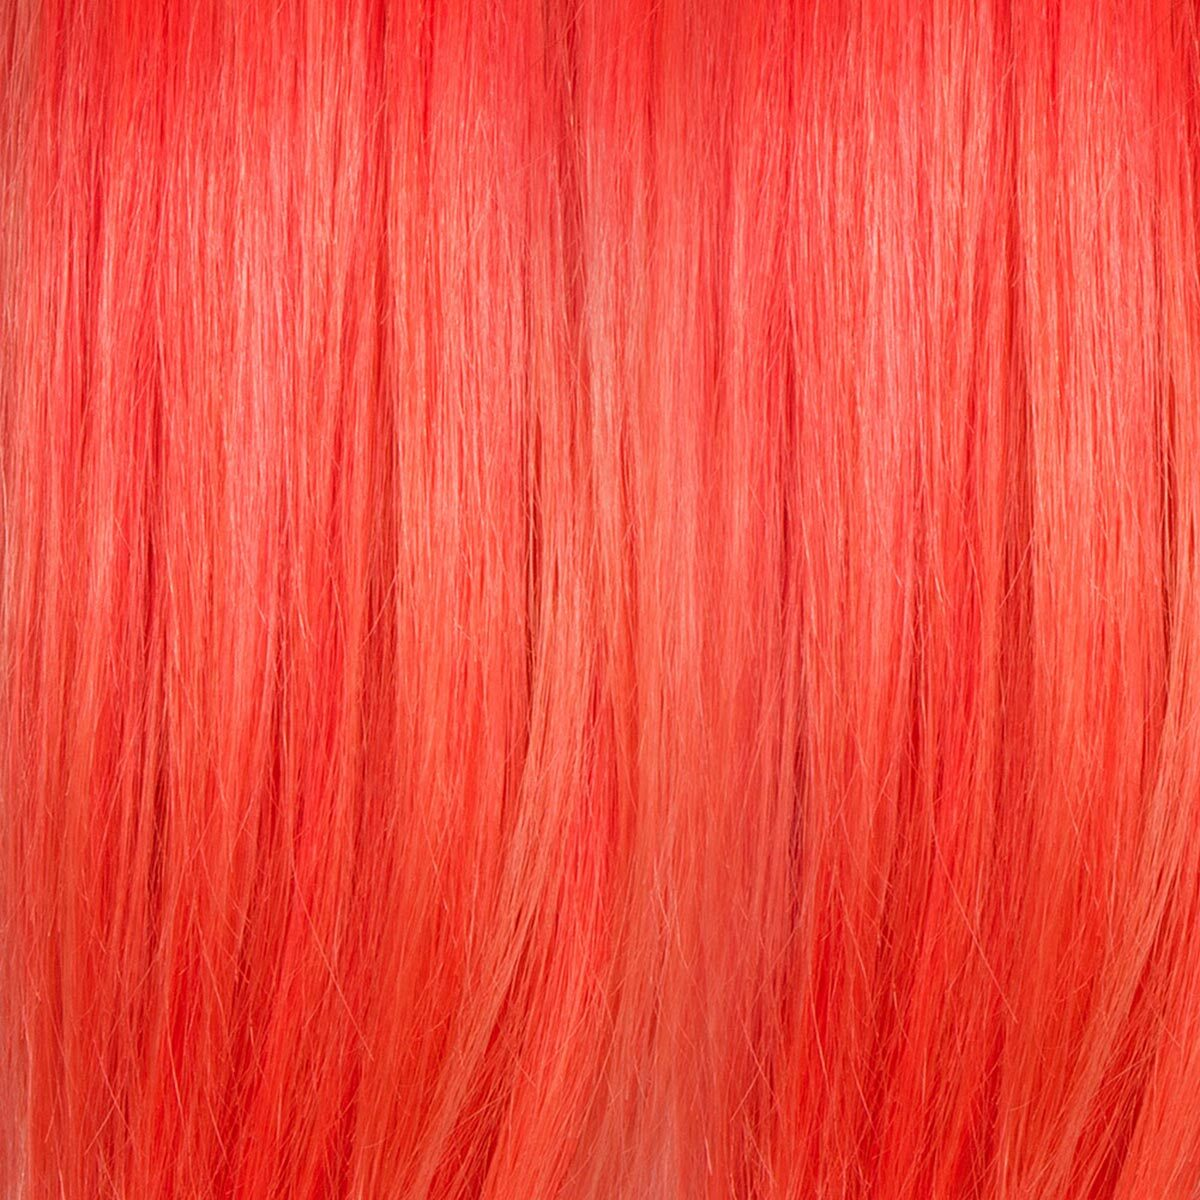 manic panic high voltage oransje uv hårfarge 118 ml pretty flamingo classic swatch 70422